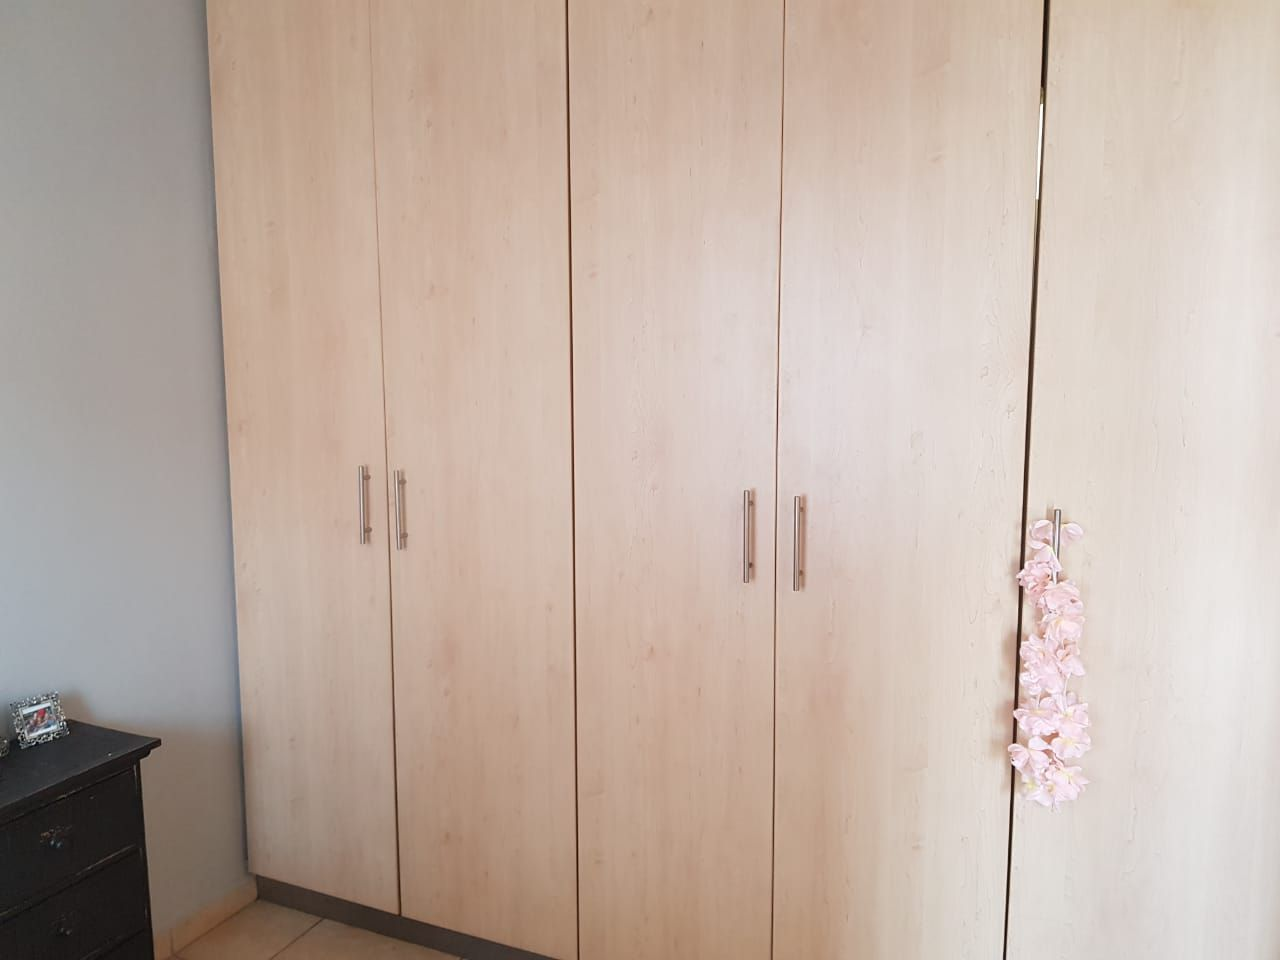 Apartment in Bult - WhatsApp Image 2020-02-05 at 10.16.49 (4).jpeg